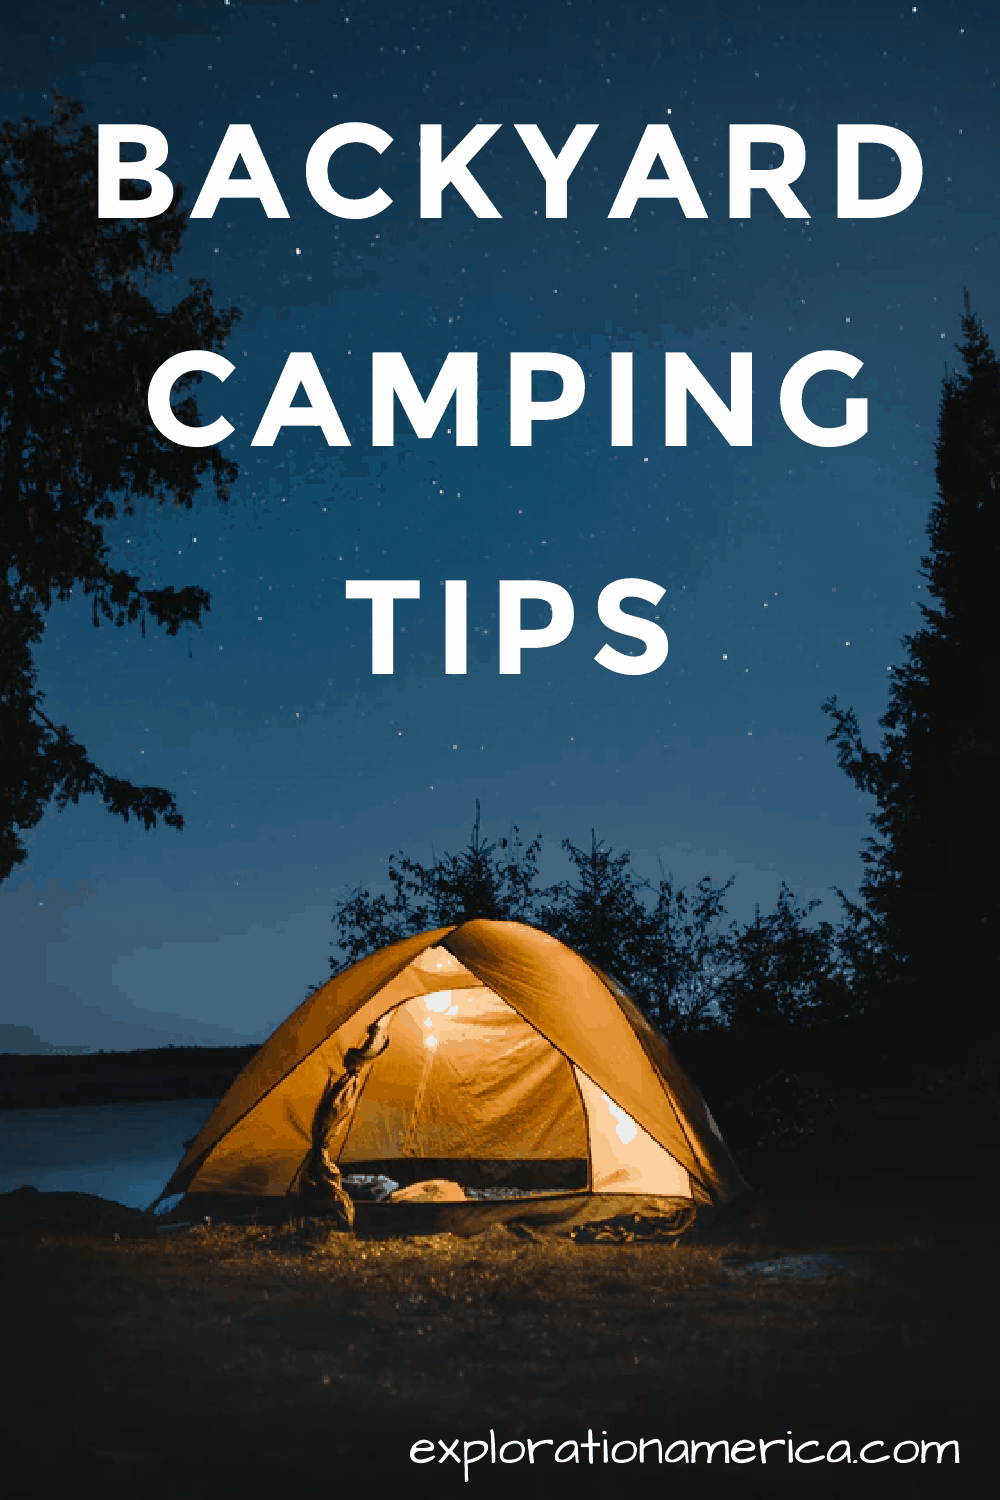 Tips for Camping in Your Backyard